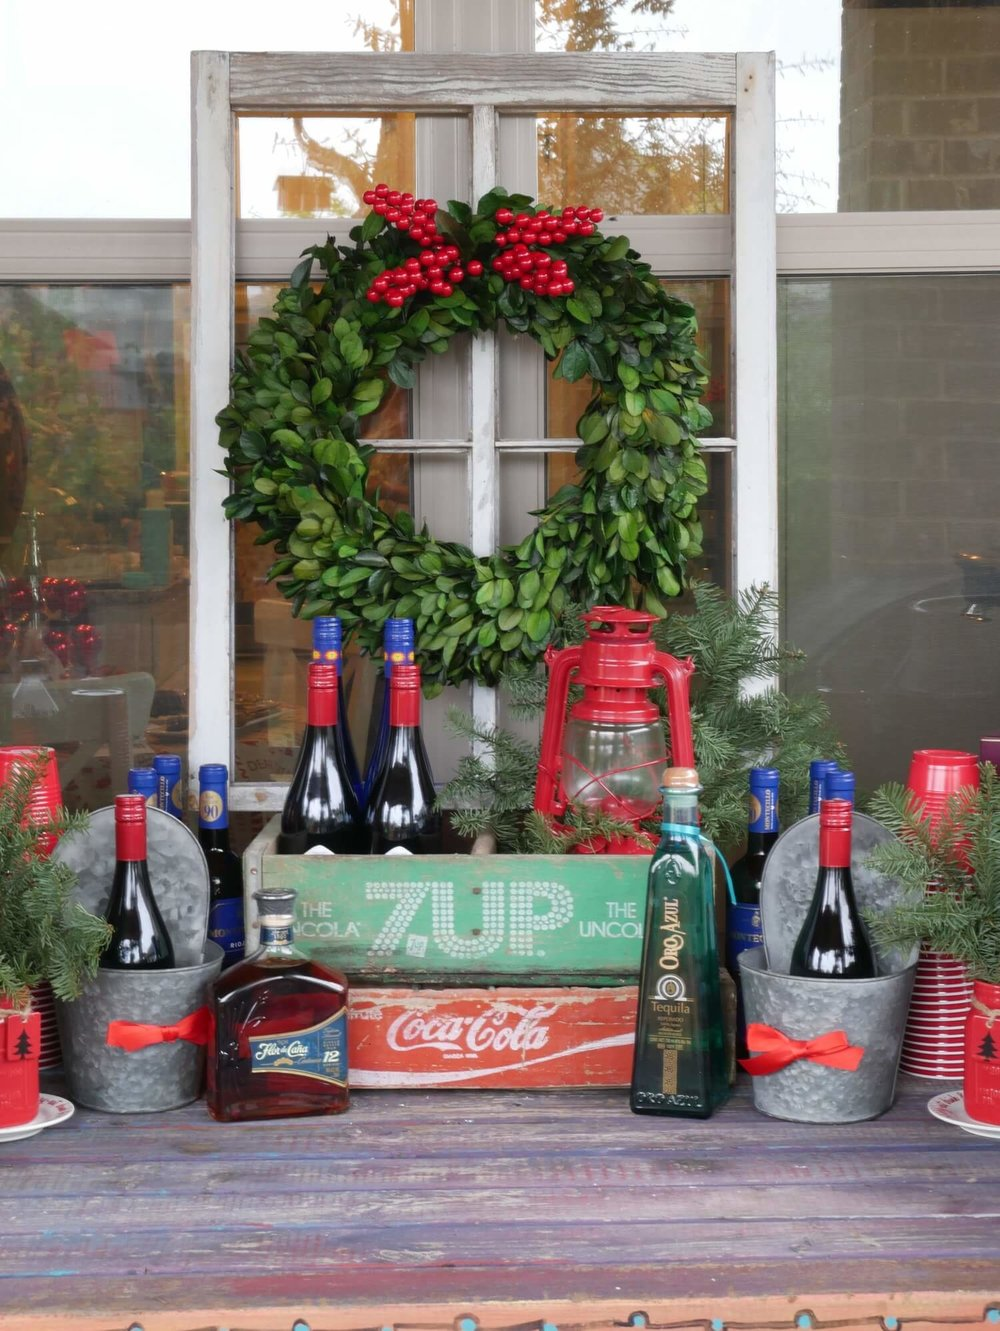 Rustic Drink Station for a Christmas party!  Love the green wreath on the vintage window.